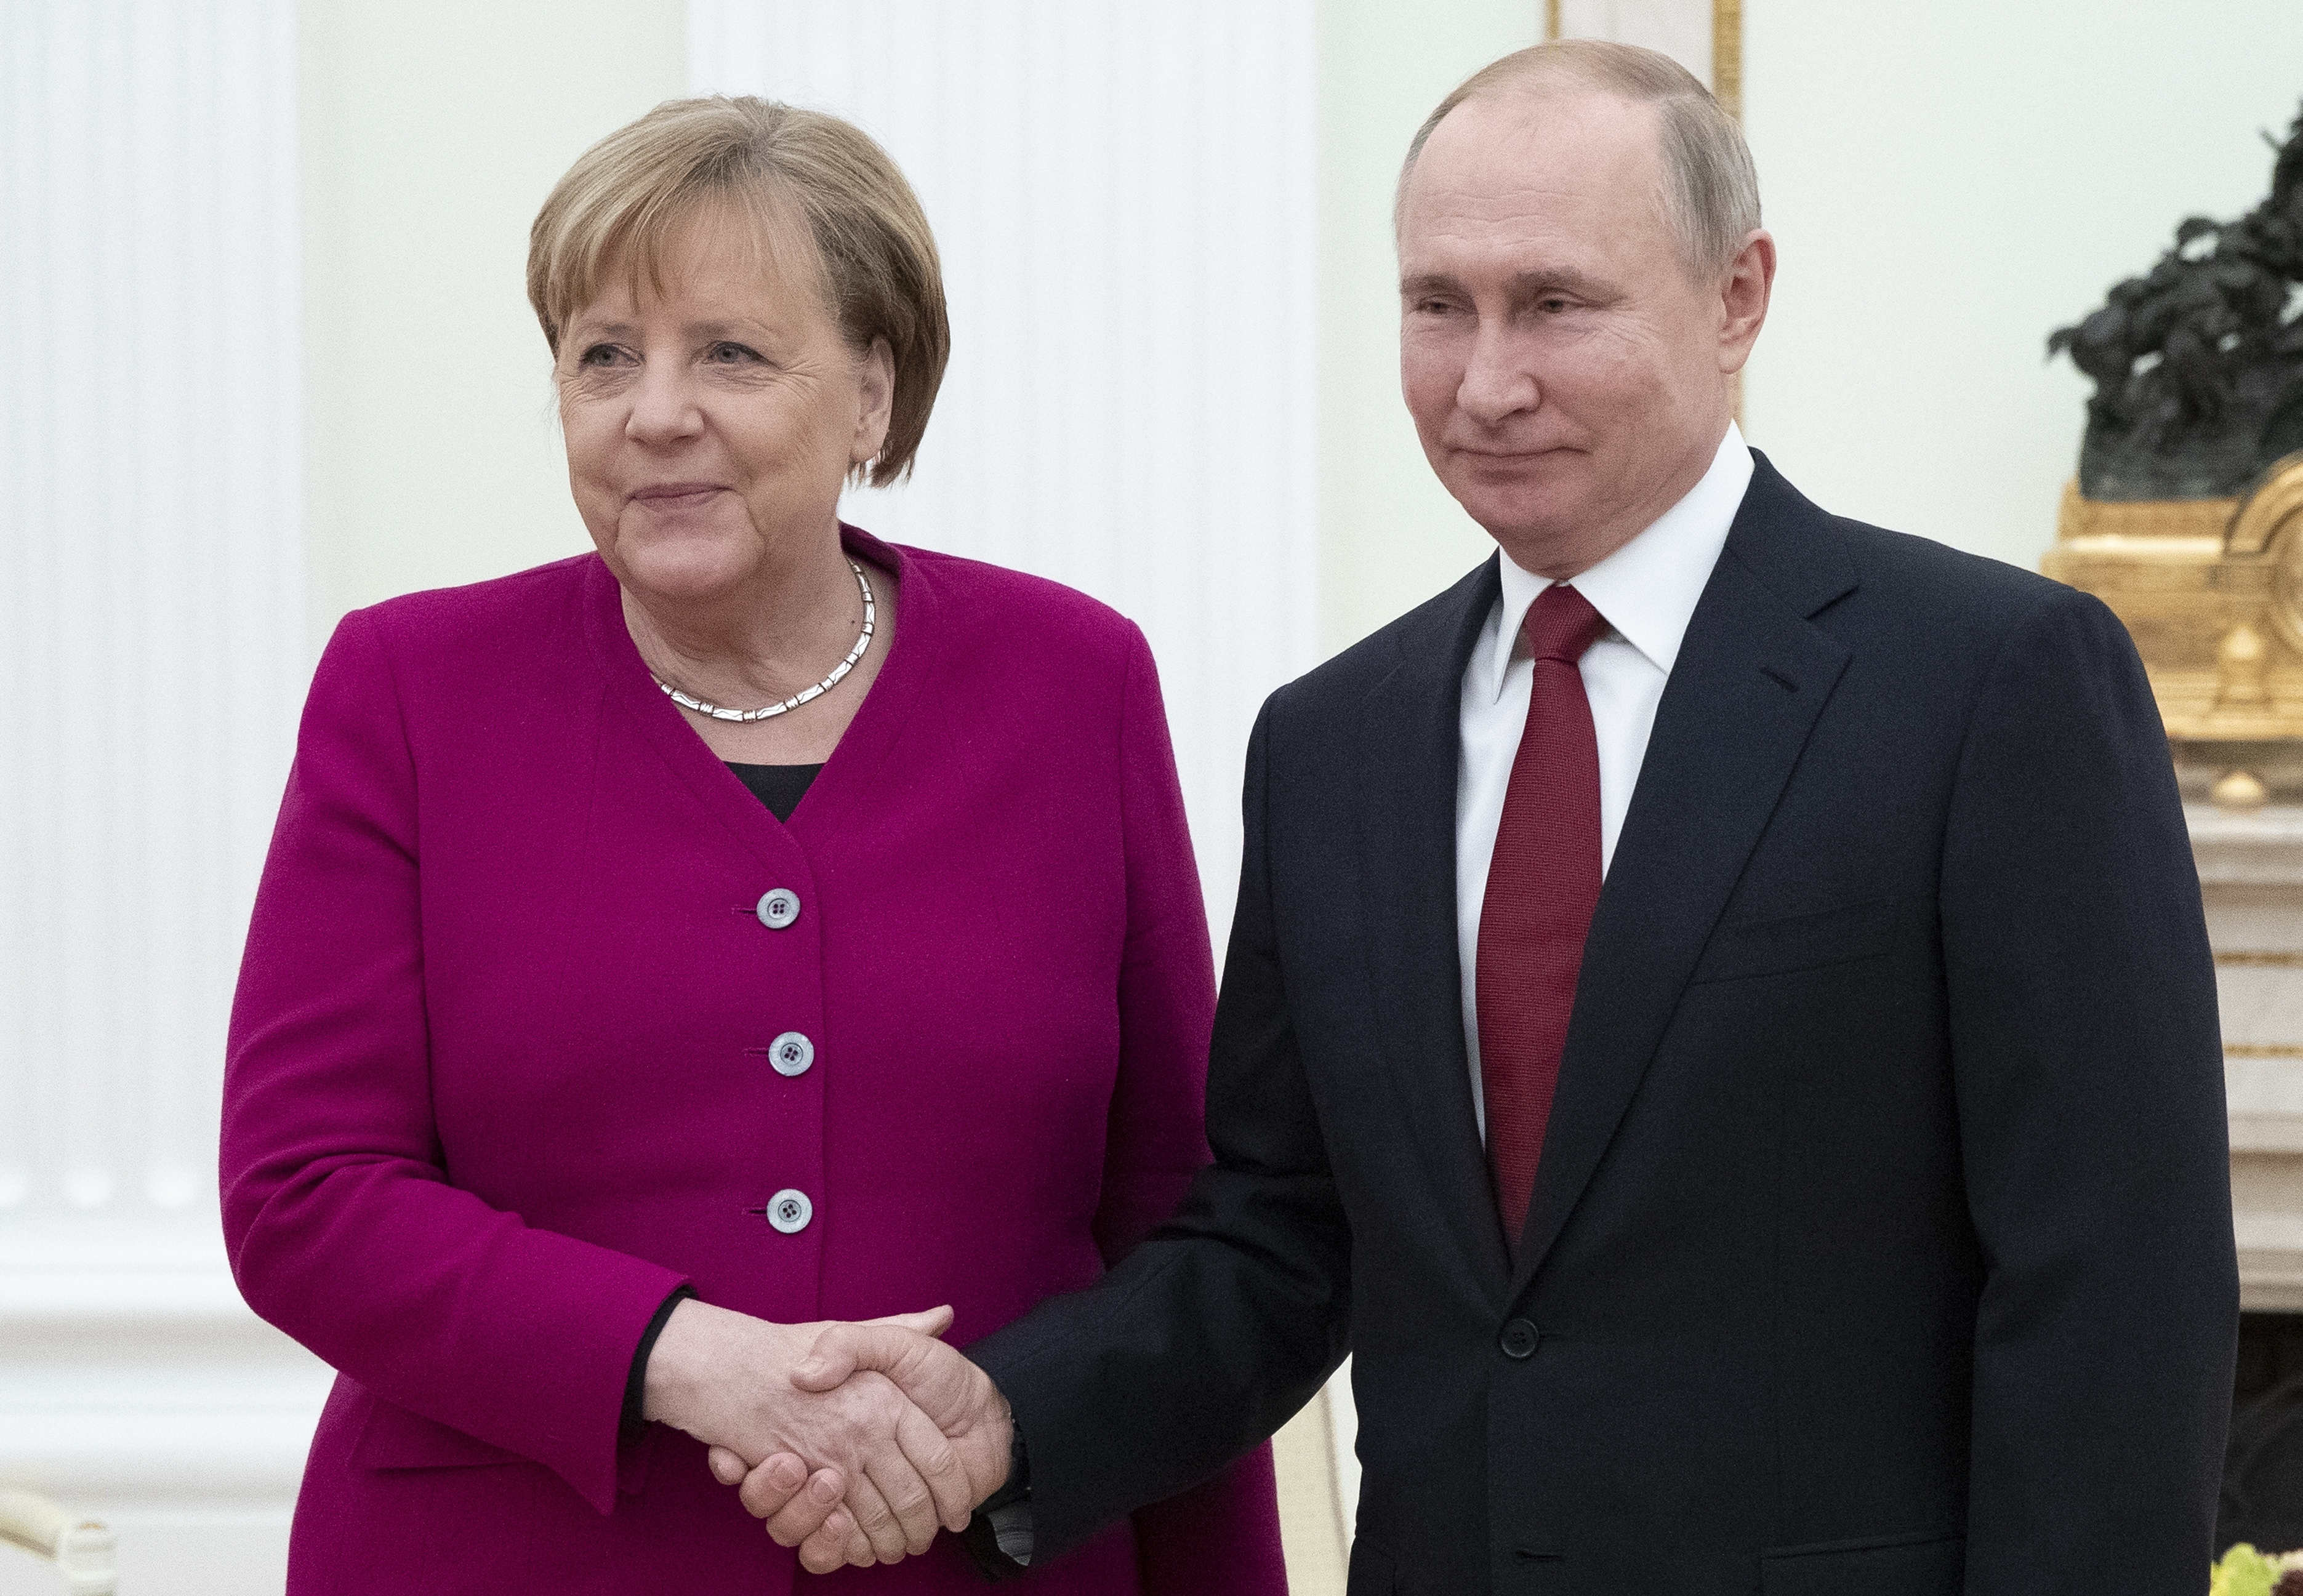 Russian President Vladimir Putin, right, and German Chancellor Angela Merkel pose for a photo prior to the talks in the Kremlin in Moscow, Russia, on Jan. 11, 2020.